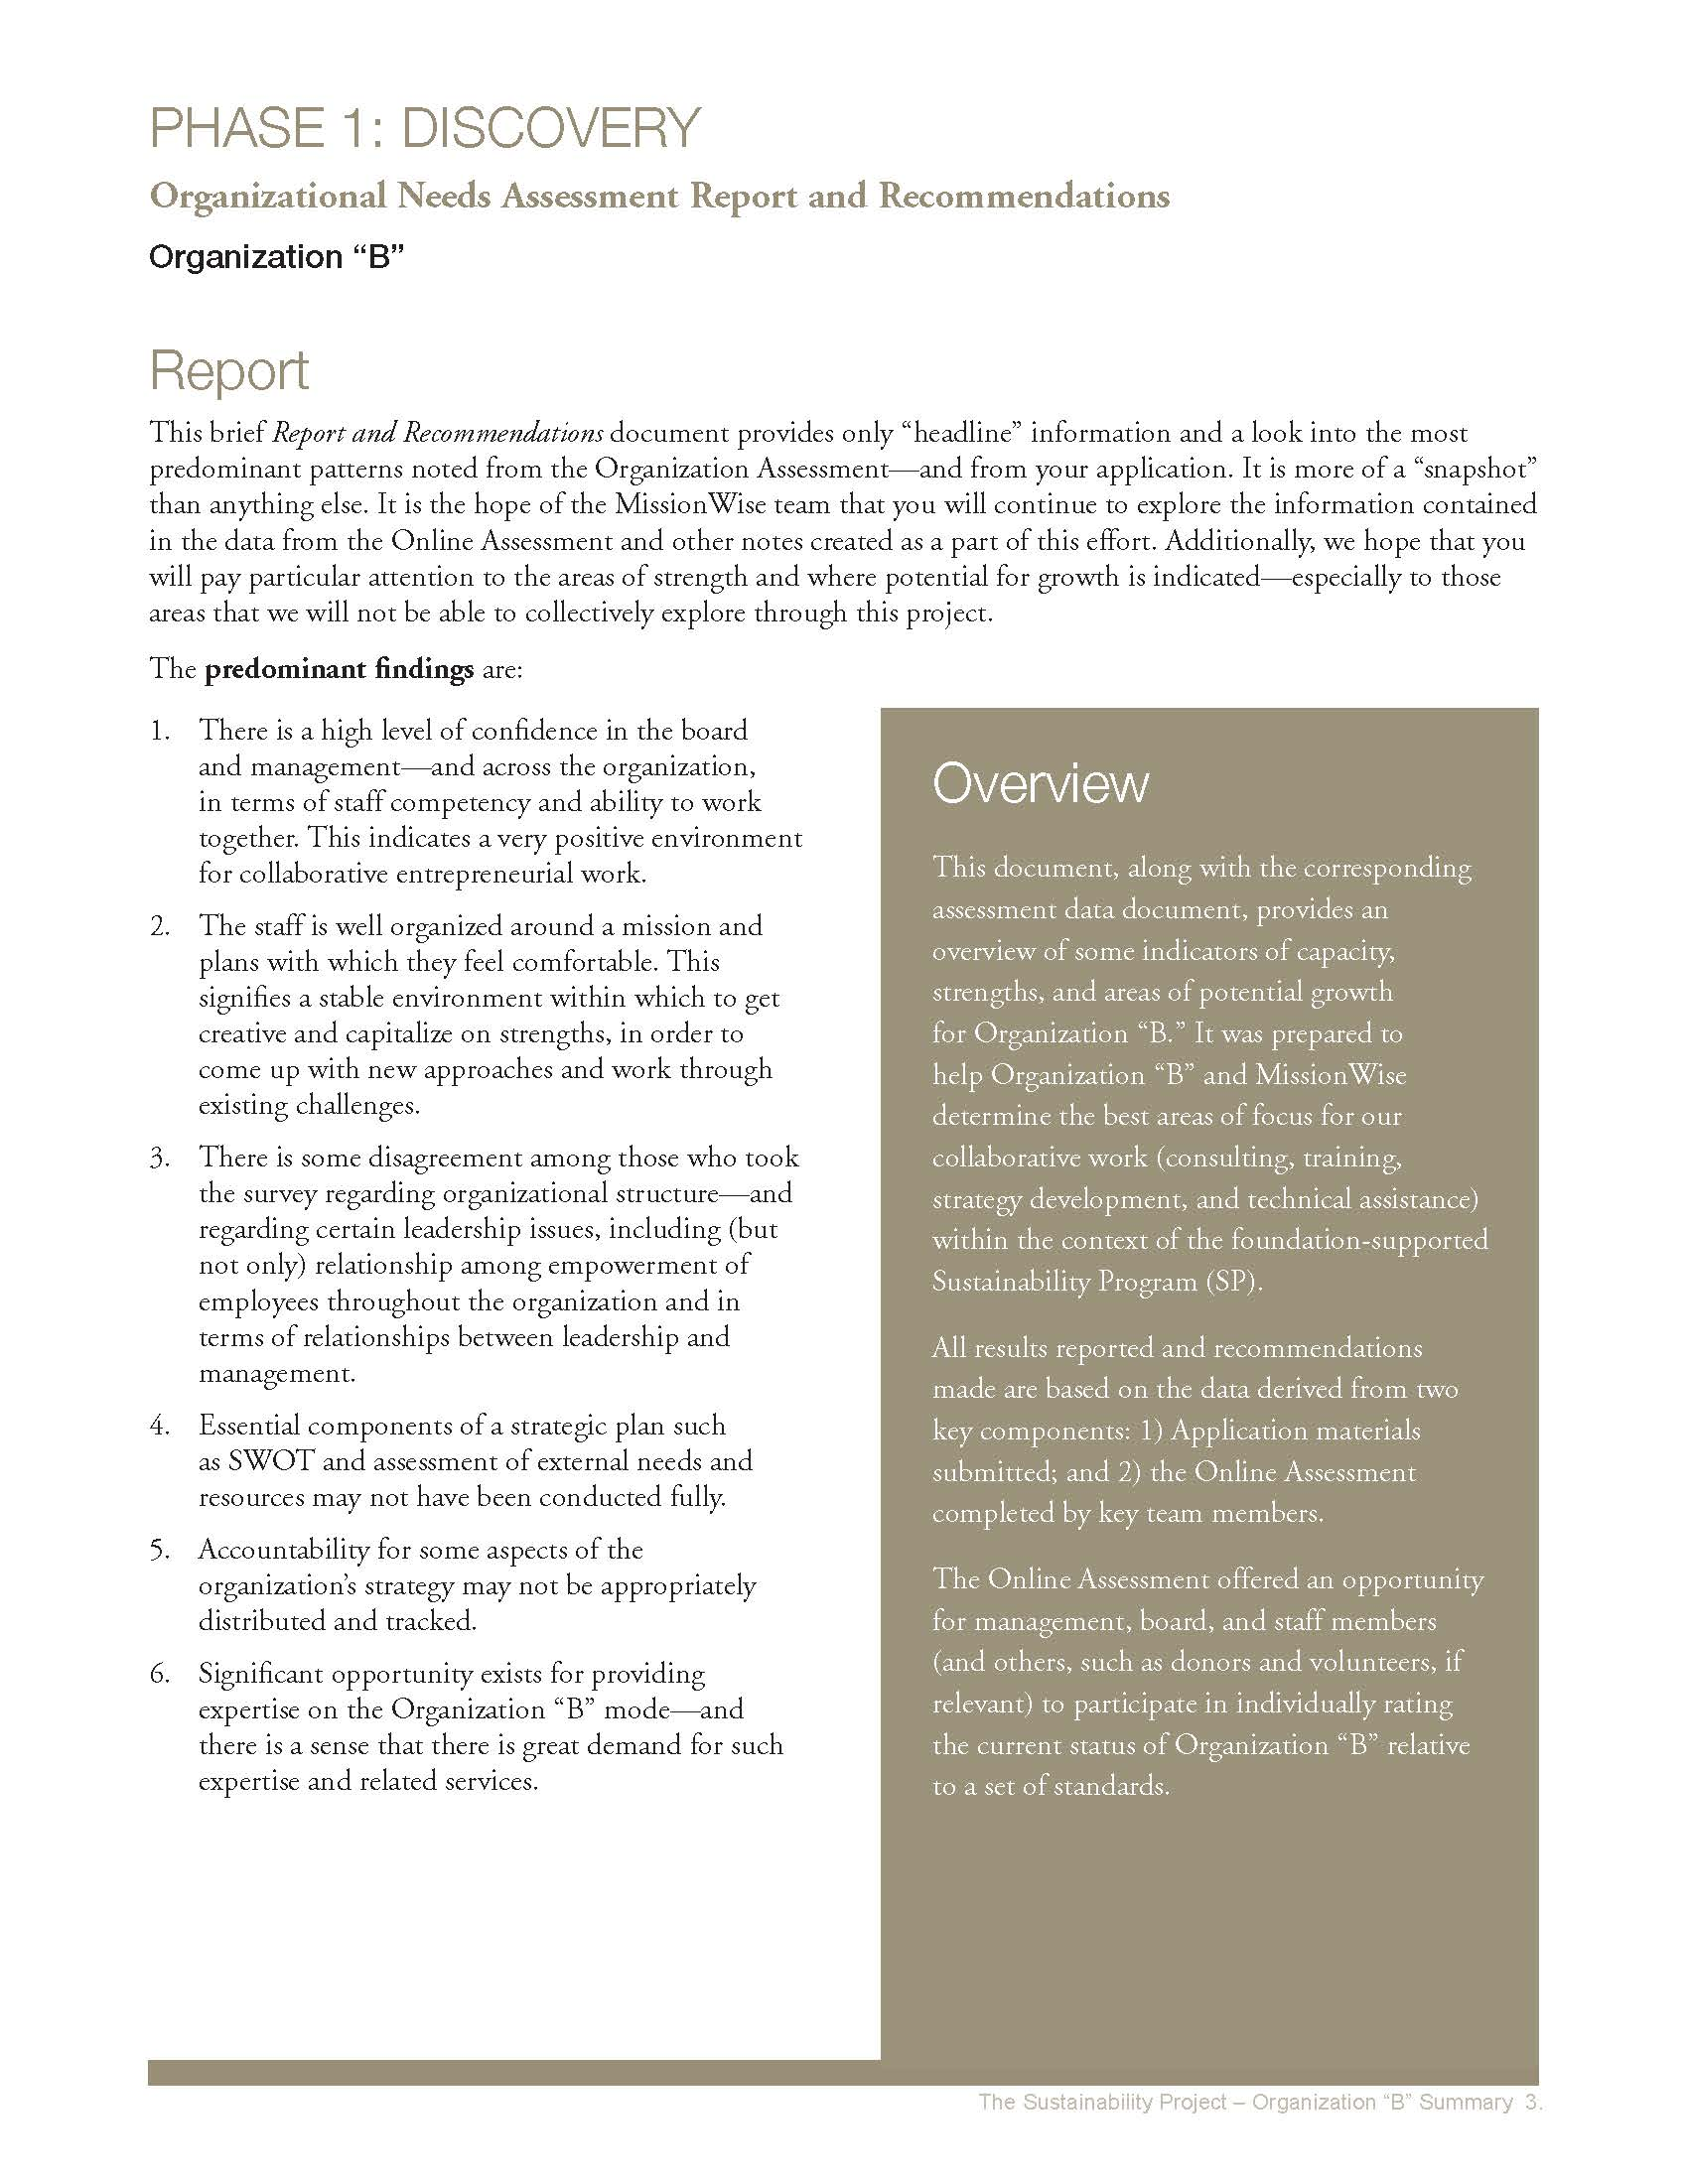 The Sustainability Project_Page_03.jpg